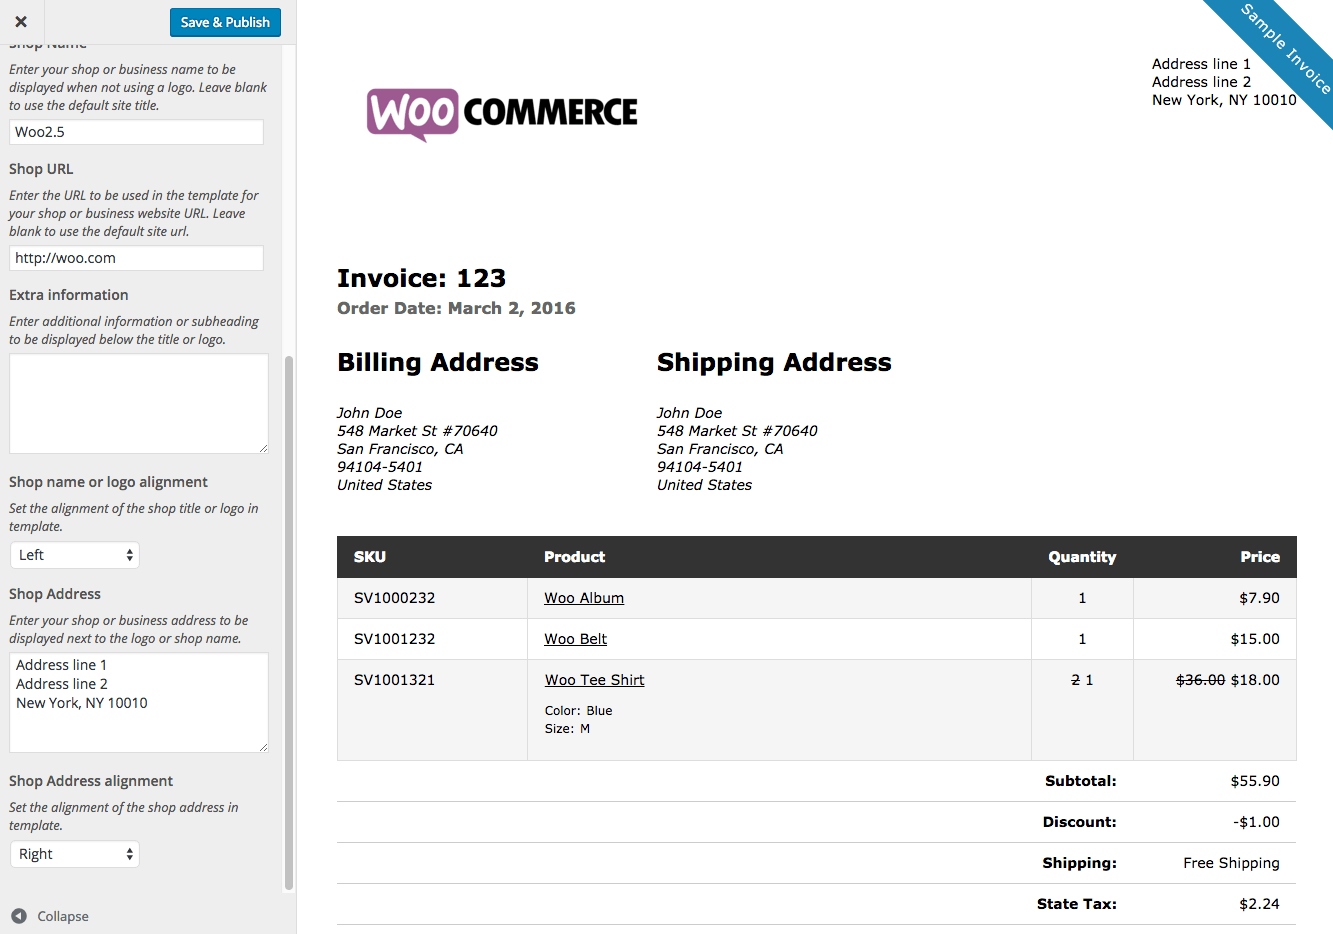 Conservativereviewus  Prepossessing Woocommerce Print Invoices Amp Packing Lists  Woocommerce Docs With Great Woocommerce Print Invoices  Packing Lists Customizer With Captivating Best Buy No Receipt Also Abbreviation For Receipt In Addition How To Fill Out Receipt Book And Walmart Return No Receipt As Well As Ross Return Policy Without Receipt Additionally Missouri Property Tax Receipt From Docswoocommercecom With Conservativereviewus  Great Woocommerce Print Invoices Amp Packing Lists  Woocommerce Docs With Captivating Woocommerce Print Invoices  Packing Lists Customizer And Prepossessing Best Buy No Receipt Also Abbreviation For Receipt In Addition How To Fill Out Receipt Book From Docswoocommercecom